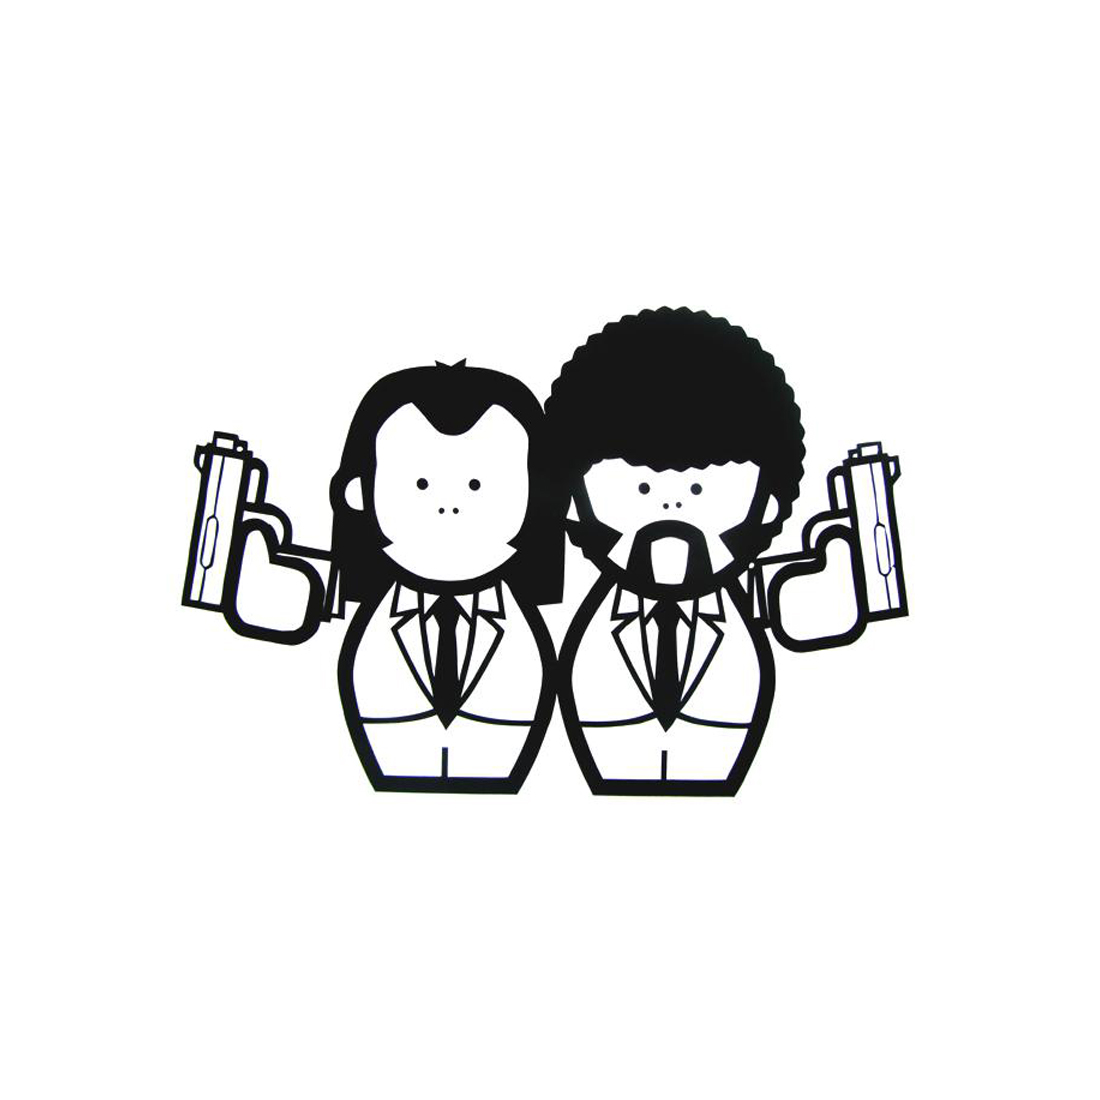 1100x1100 Buy Pulp Fiction Movie Minimal Poster Buy Hollywood Amp Movies